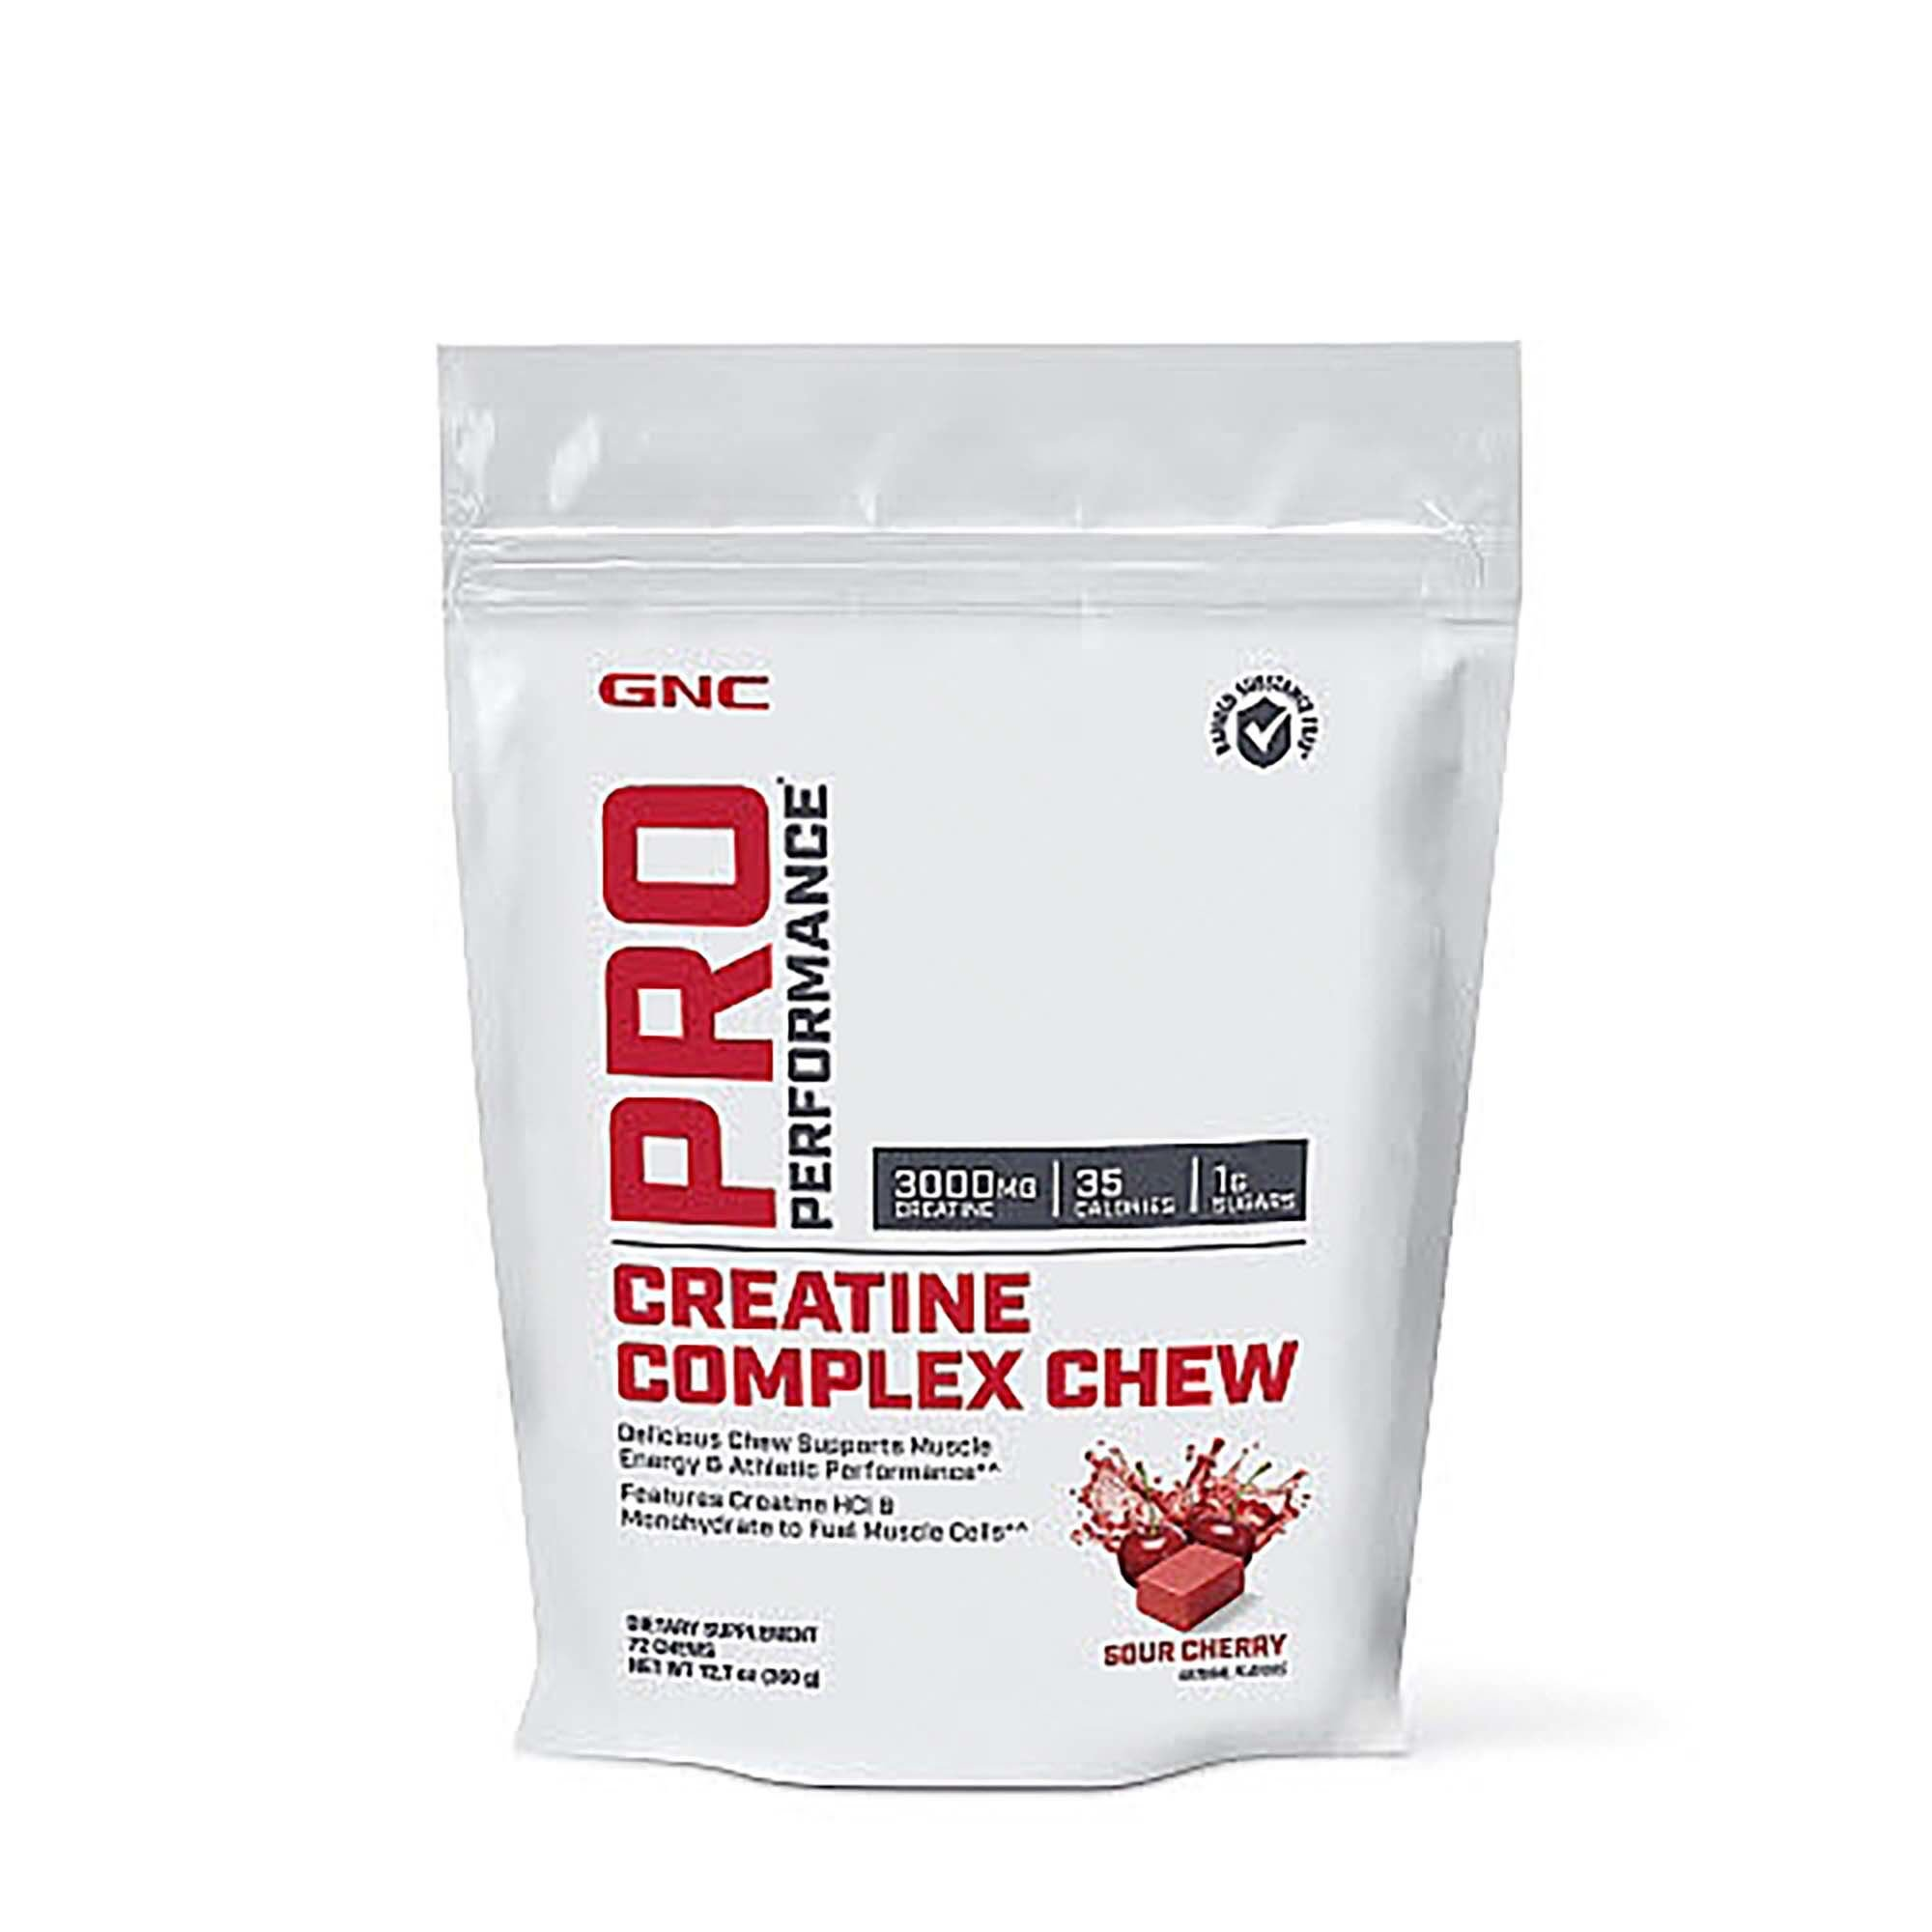 GNC Pro Performance Creatine Complex Chew - Sour Cherry